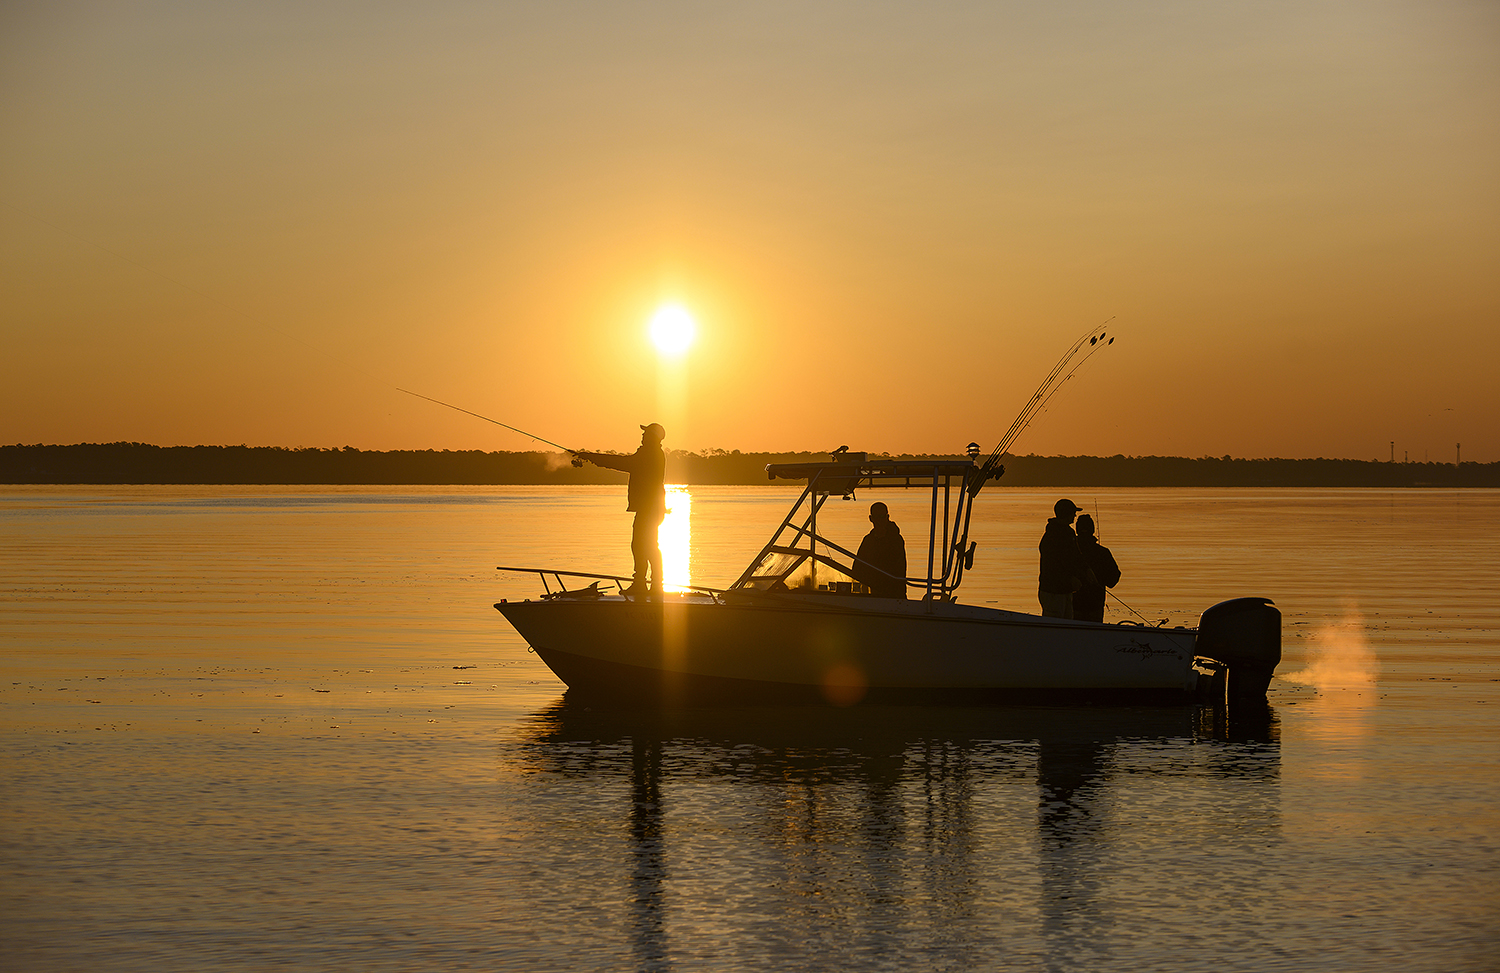 Anglers cast a line on a boat during sunset.